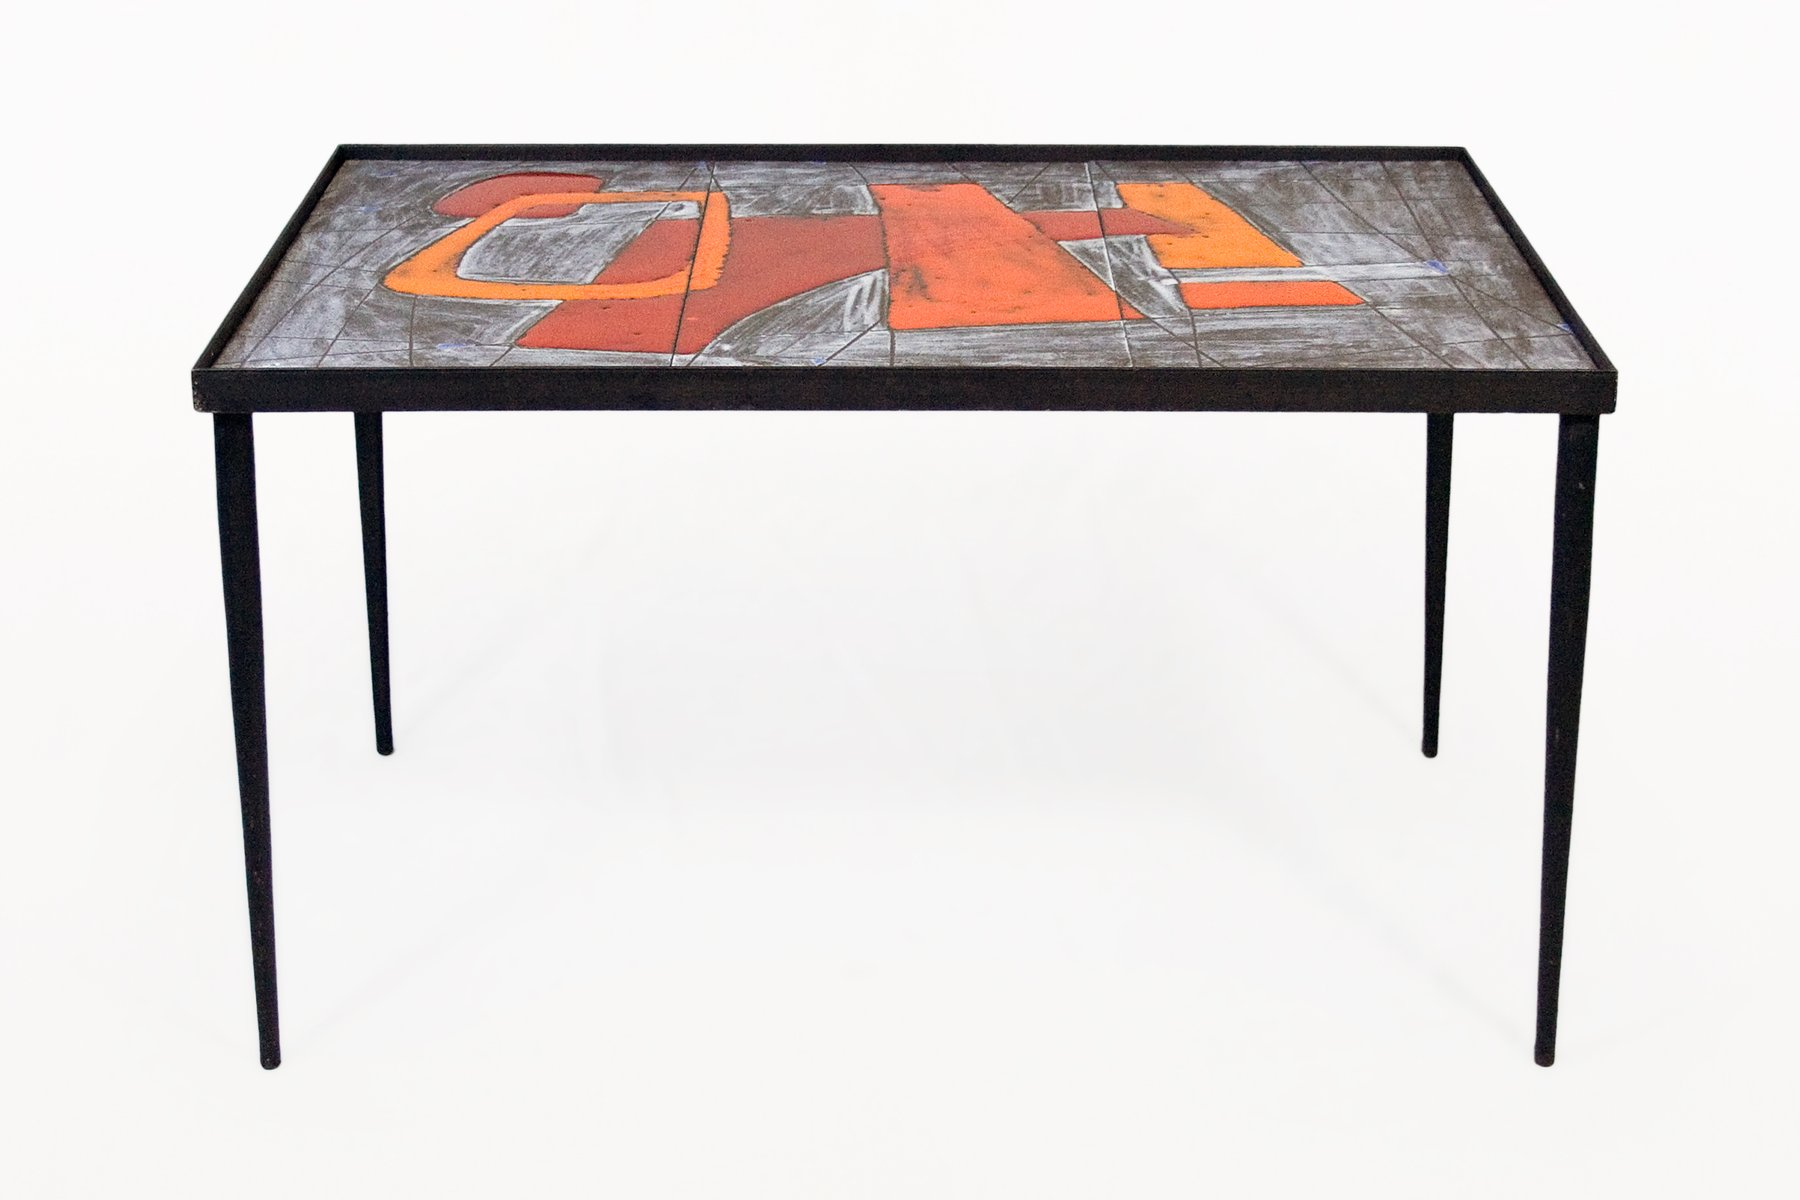 Ceramic Coffee Tables By Robert And Jean Cloutier 1960s Set Of 2 For Sale At Pamono